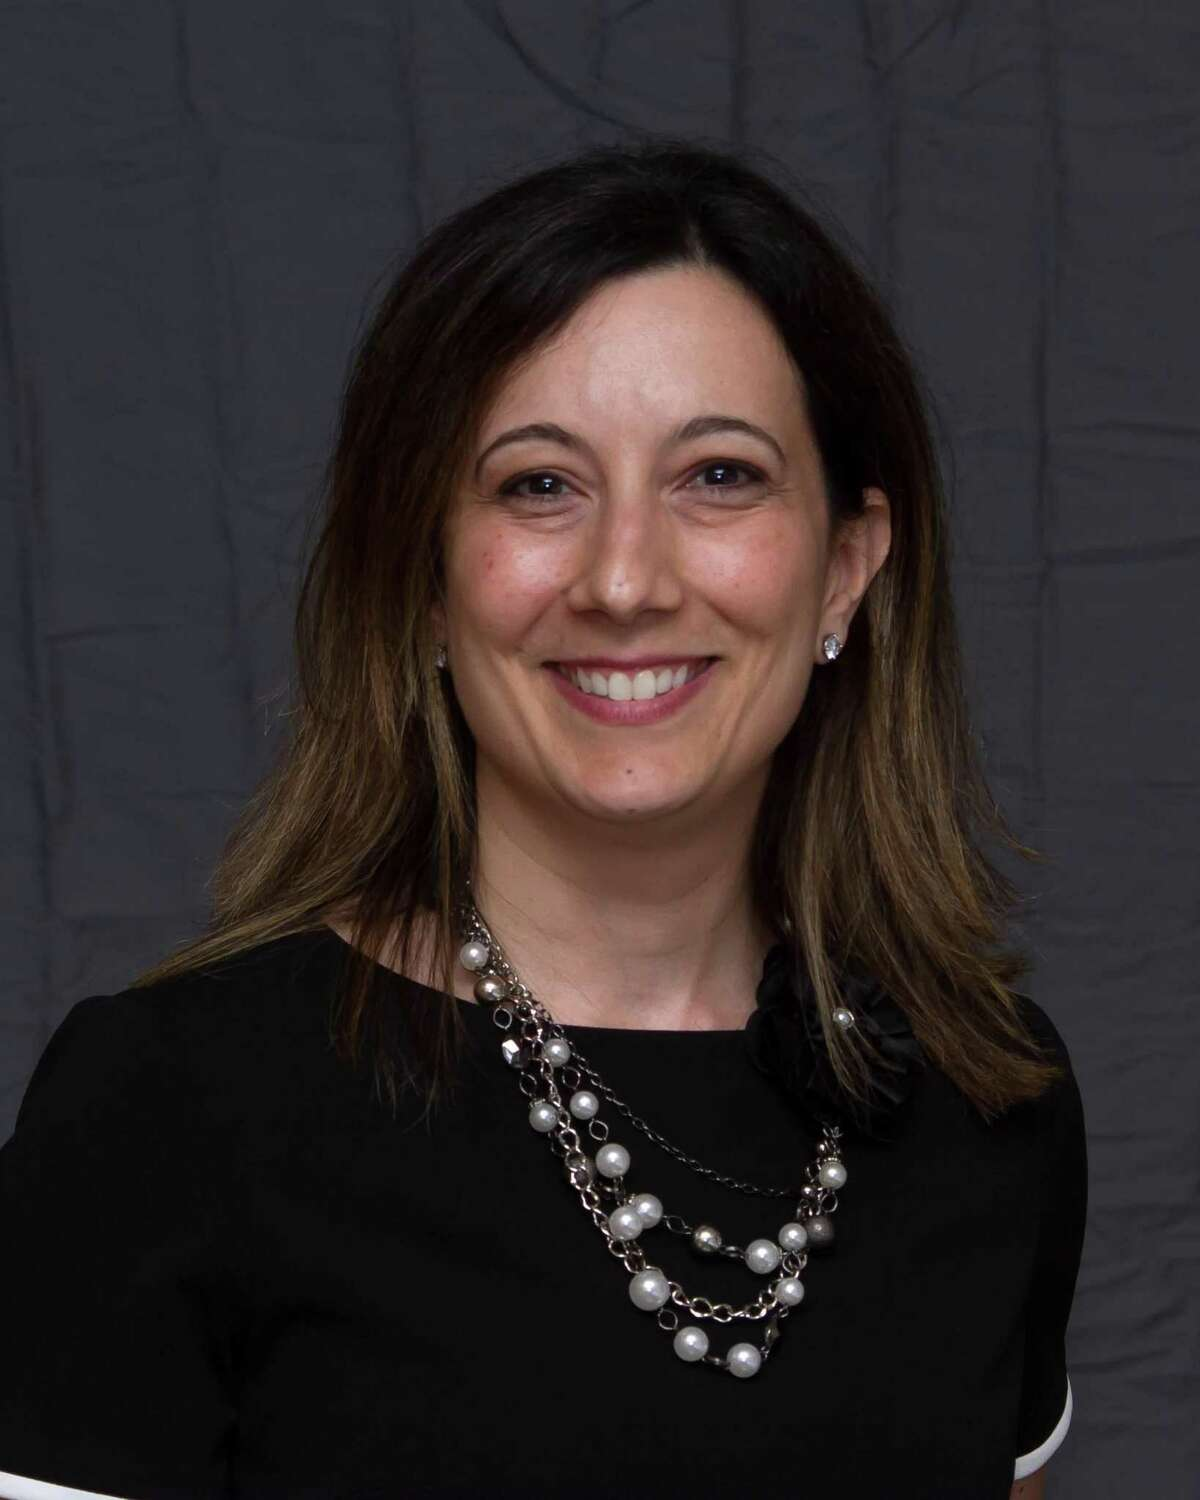 The New Milford Board of Education appointed Alisha DiCorpo interim superintendent on Thursday, Oct. 29, 2020.